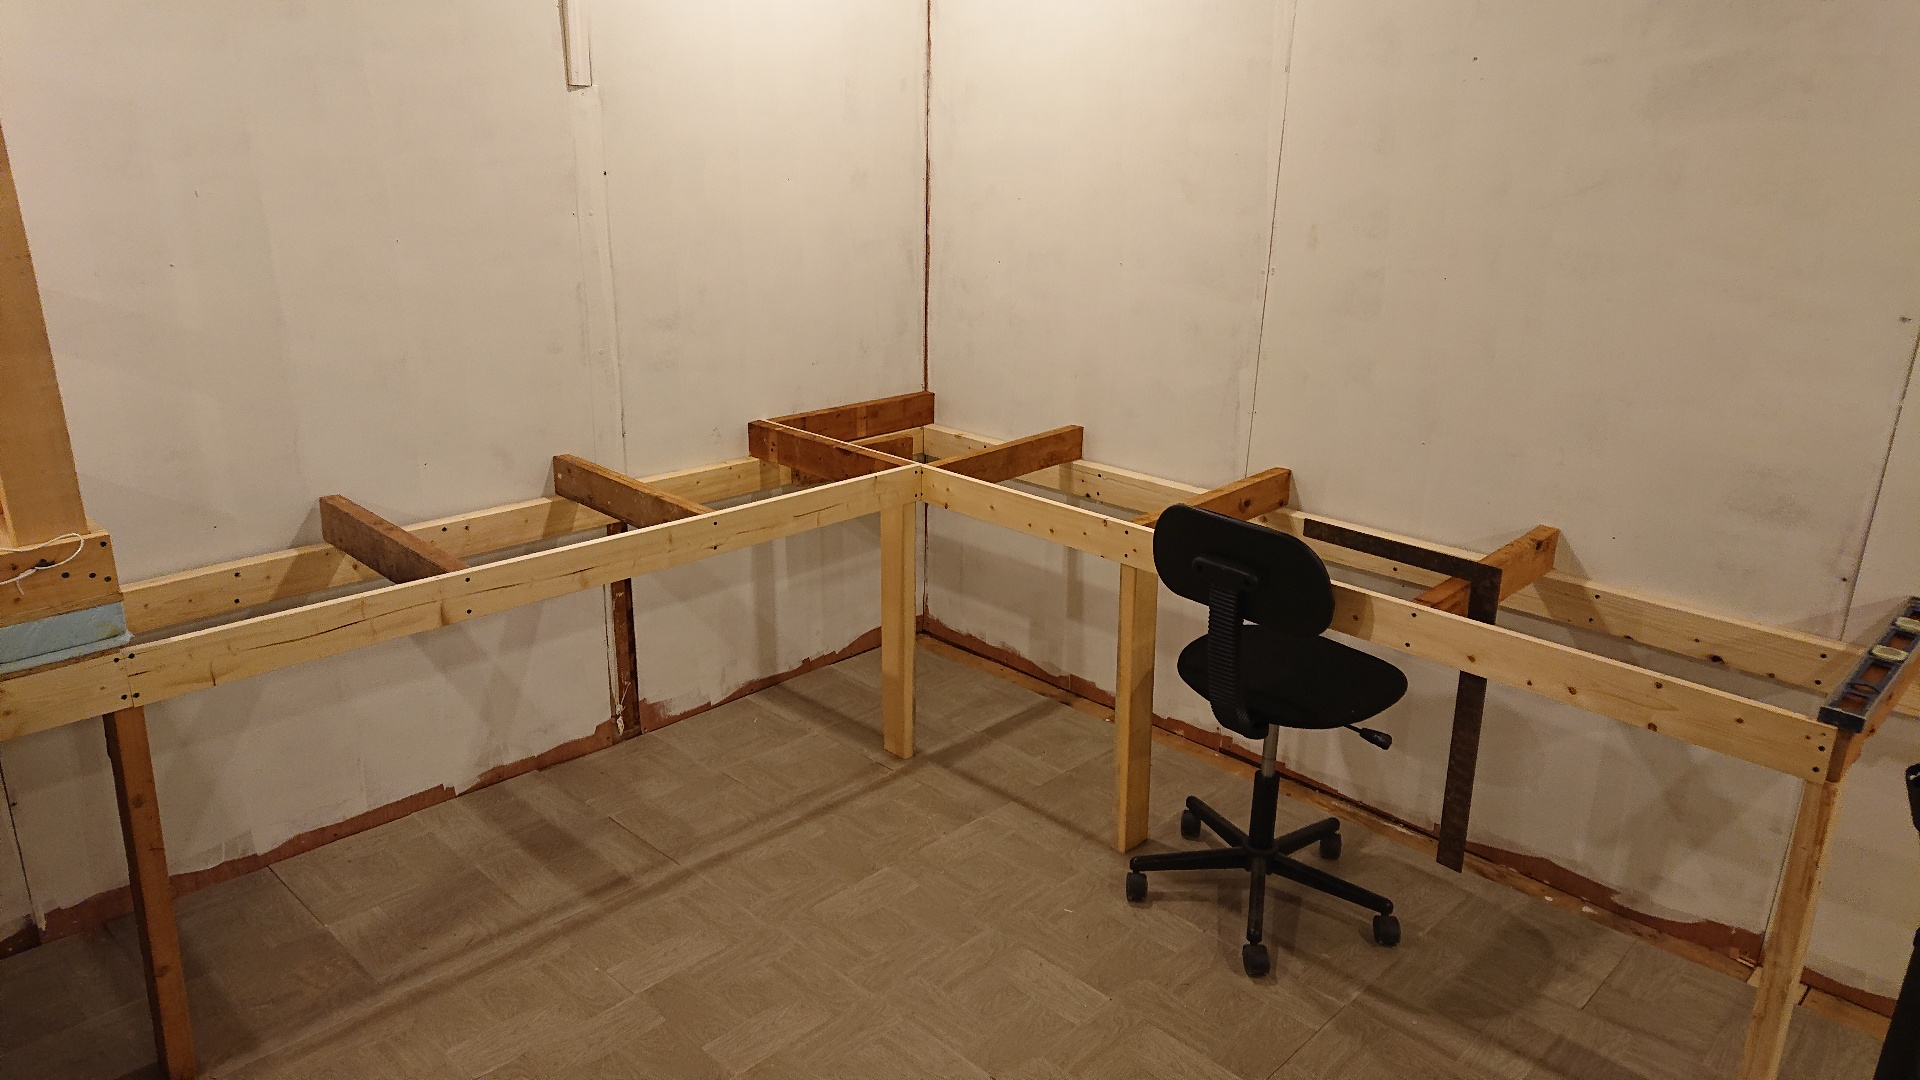 Benchwork in progress